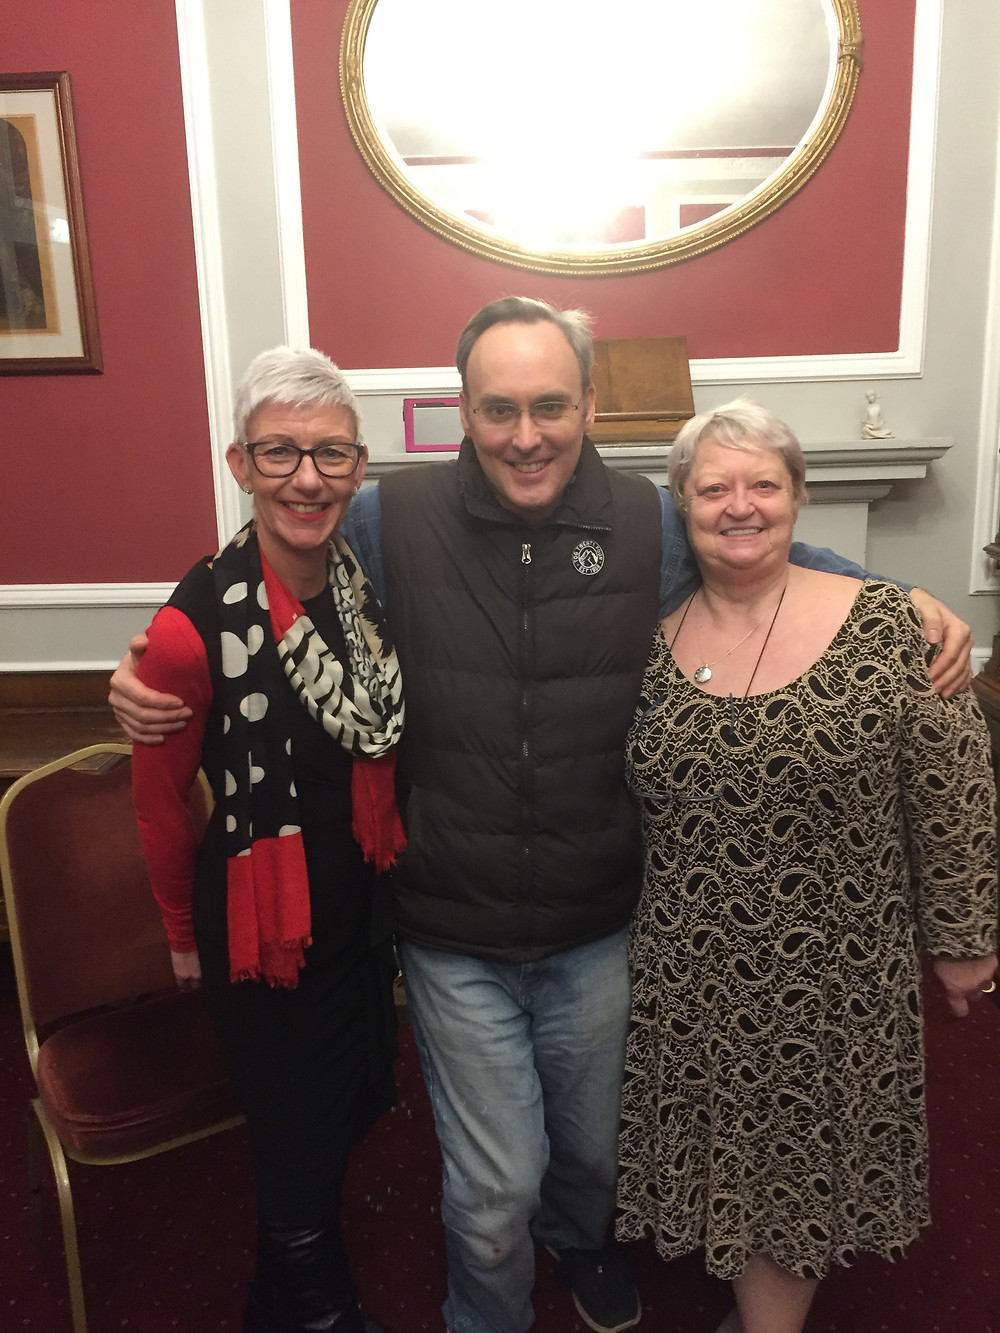 Me with my amazing tutors, Angie and Sharon